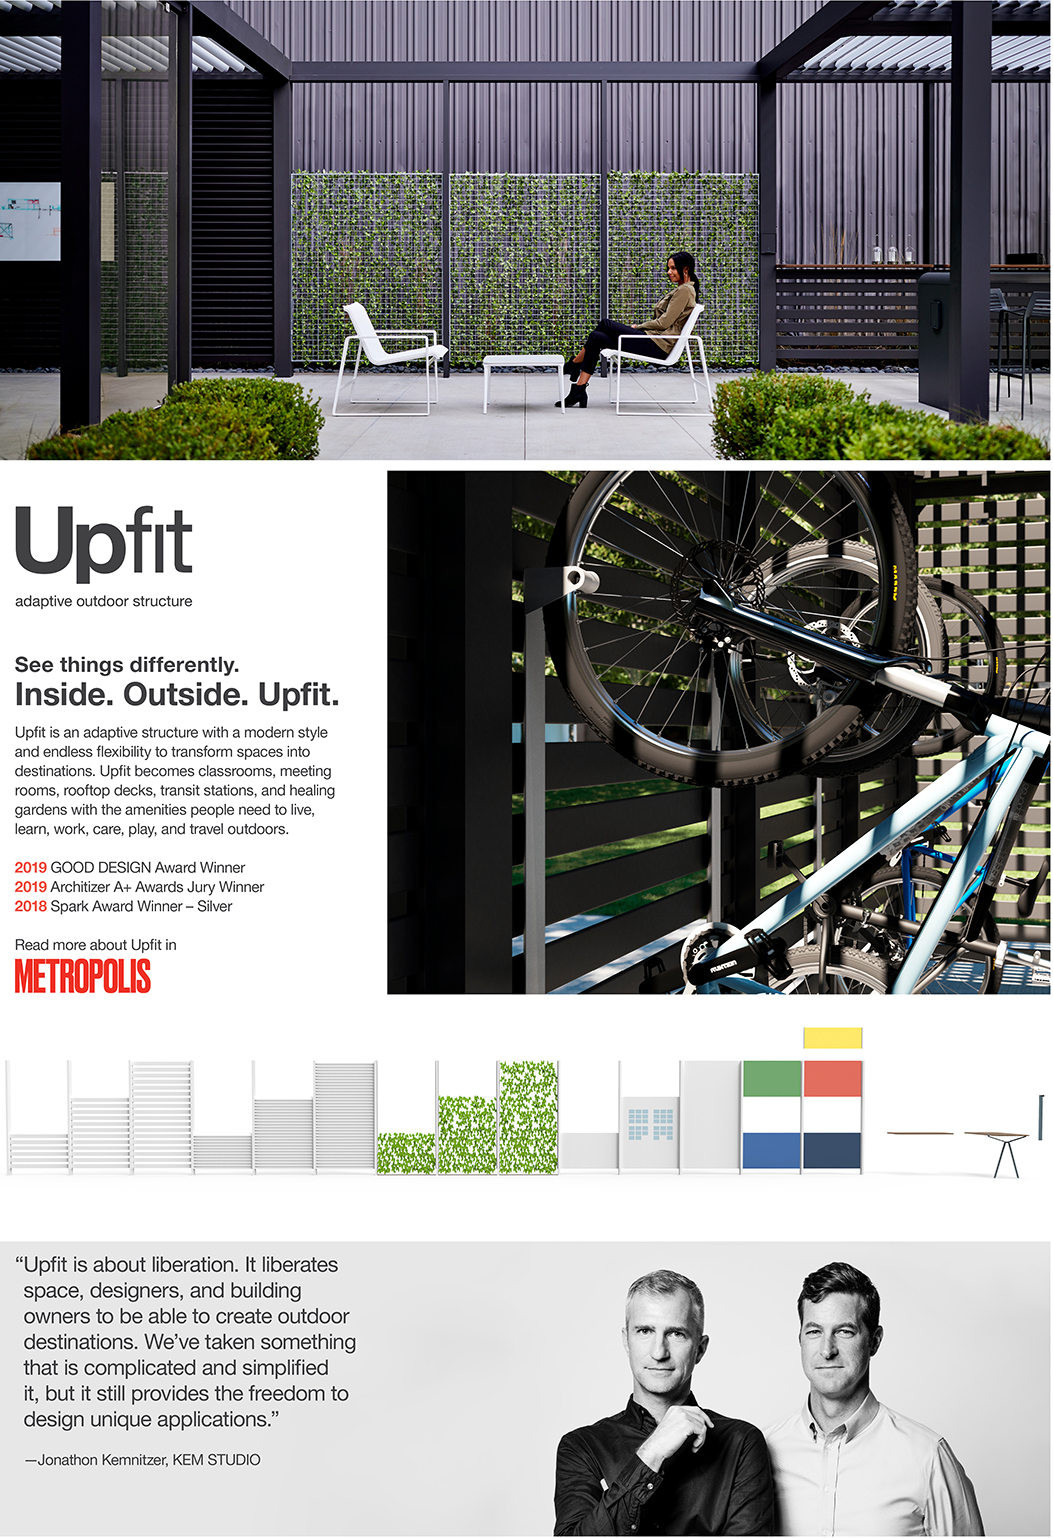 Upfit - adaptive outdoor structure